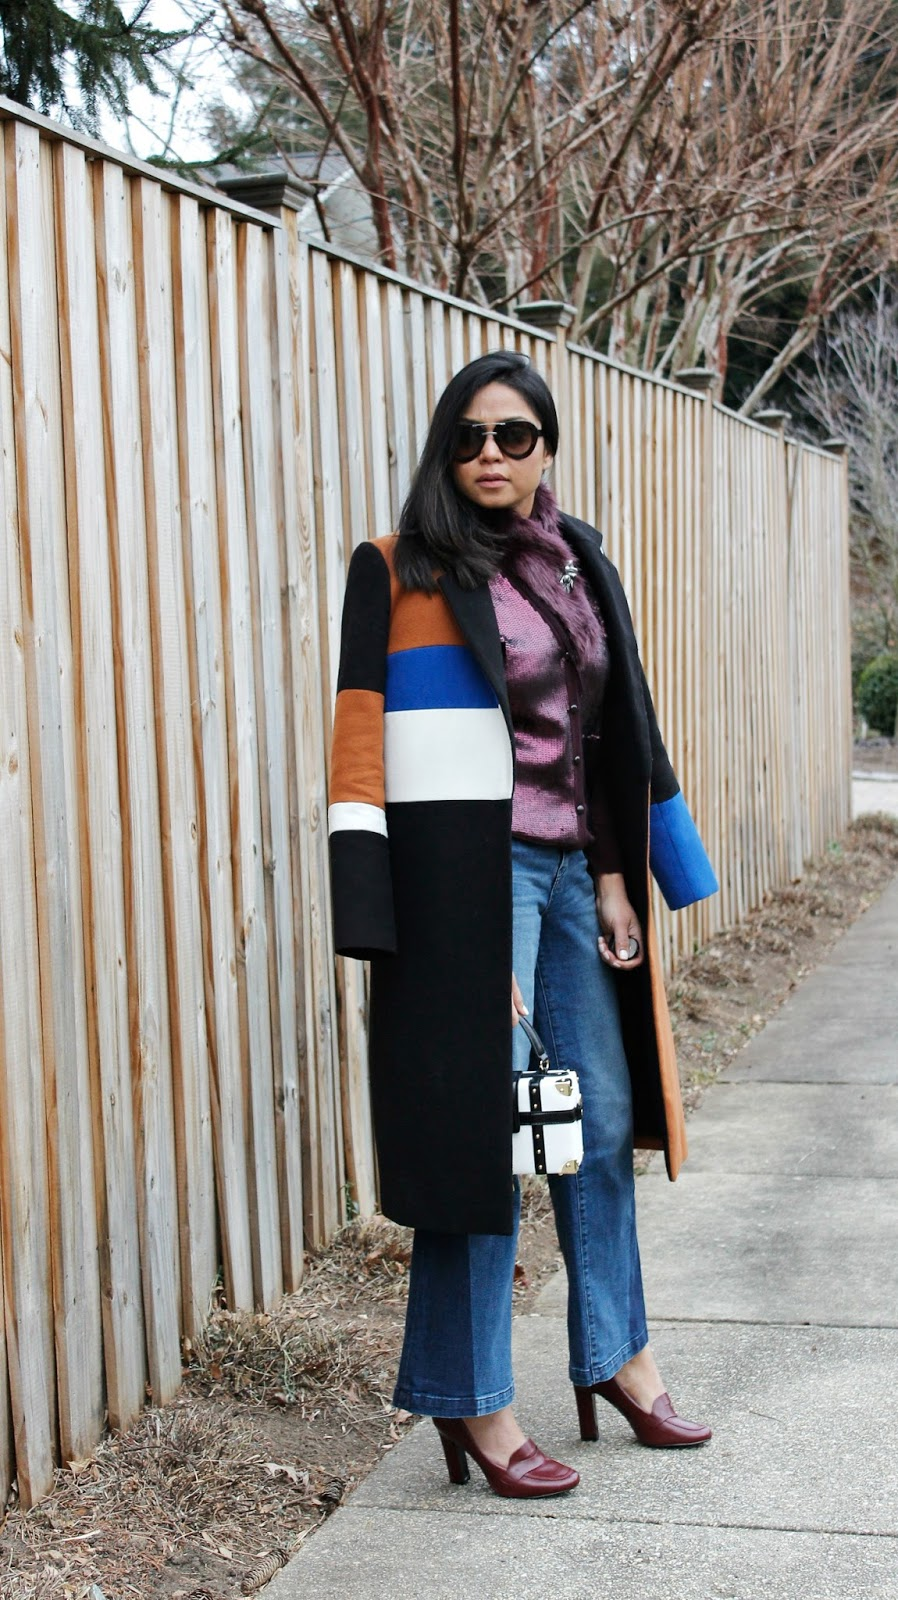 Shop bop color block coat, gap wide leg denim, sequin cardigan with fur, loafers